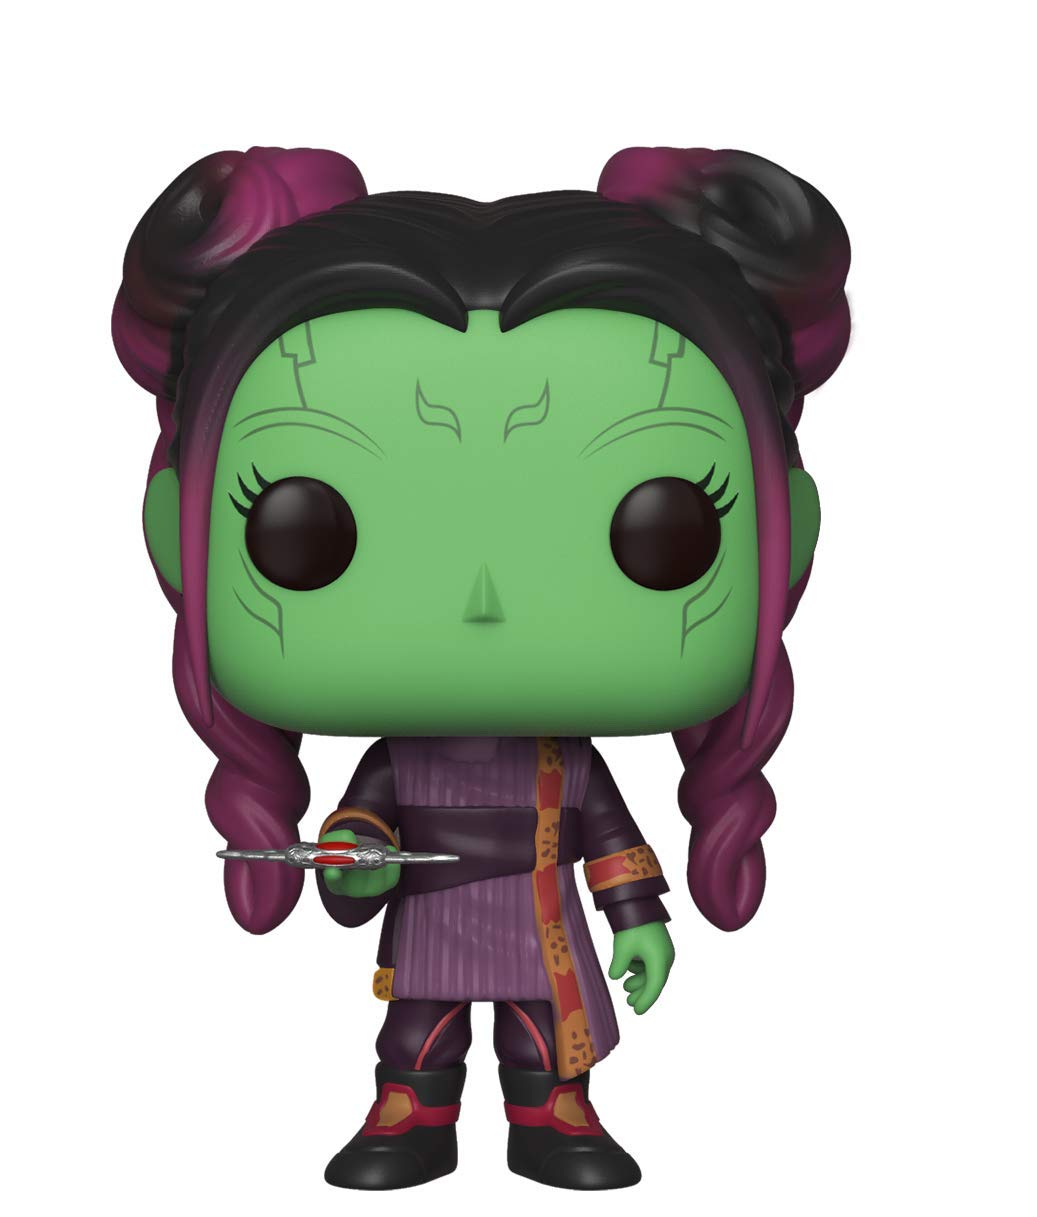 Funko Pop Marvel: Avengers Infinity War-Young Gamora with Dagger Collectible Figure, Multicolor